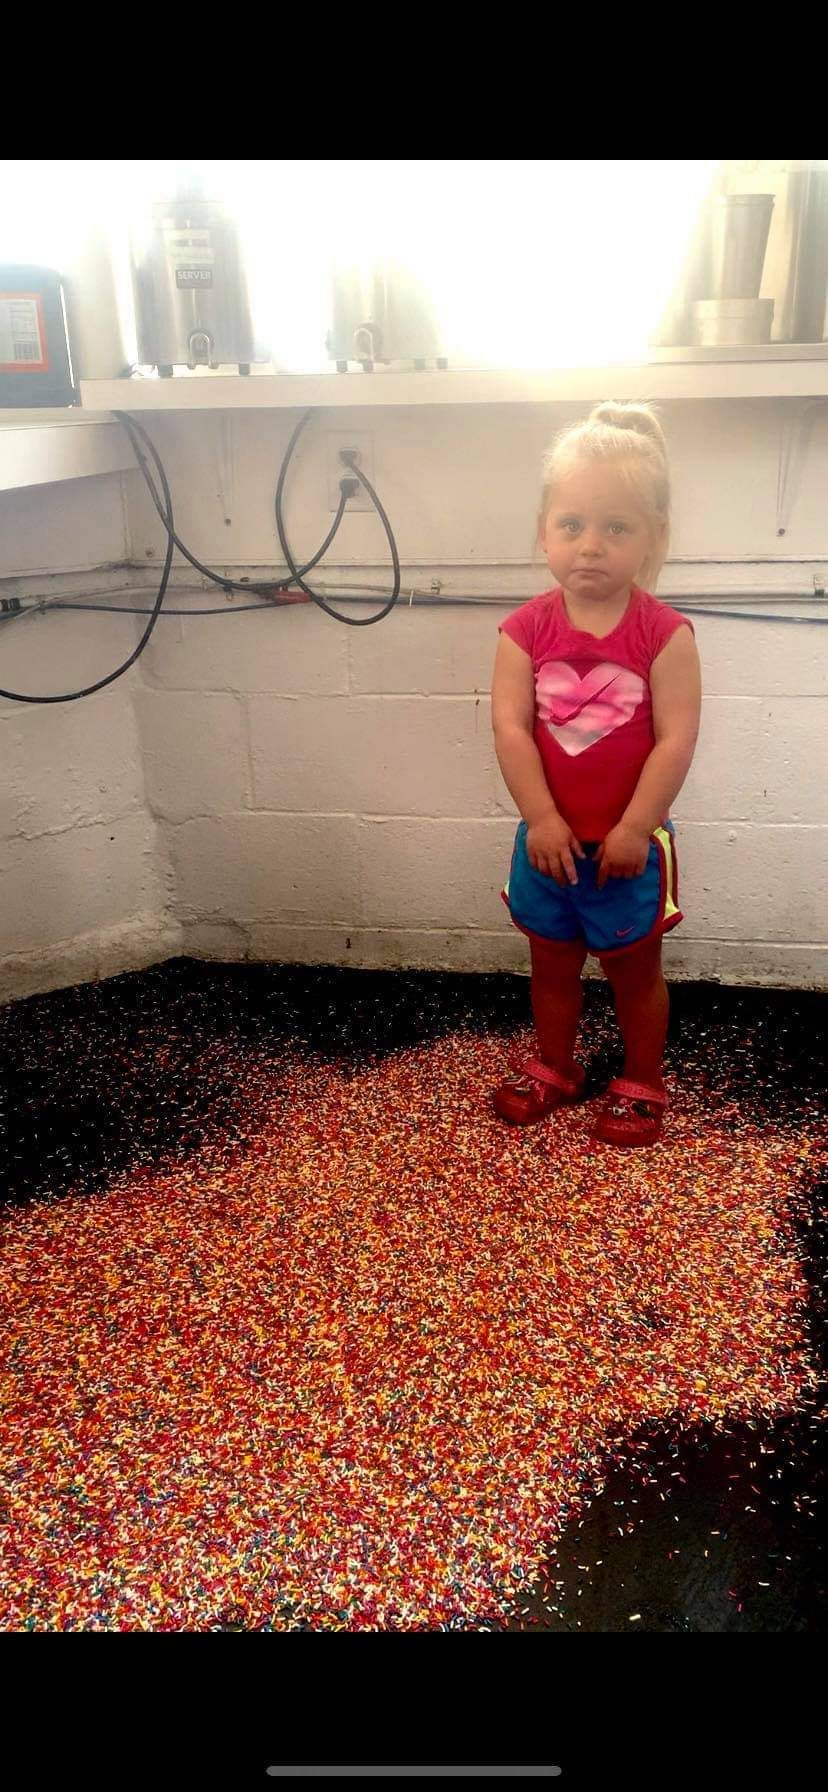 That face as this is the second time she had dumped the sprinkles at the local icecream shop...